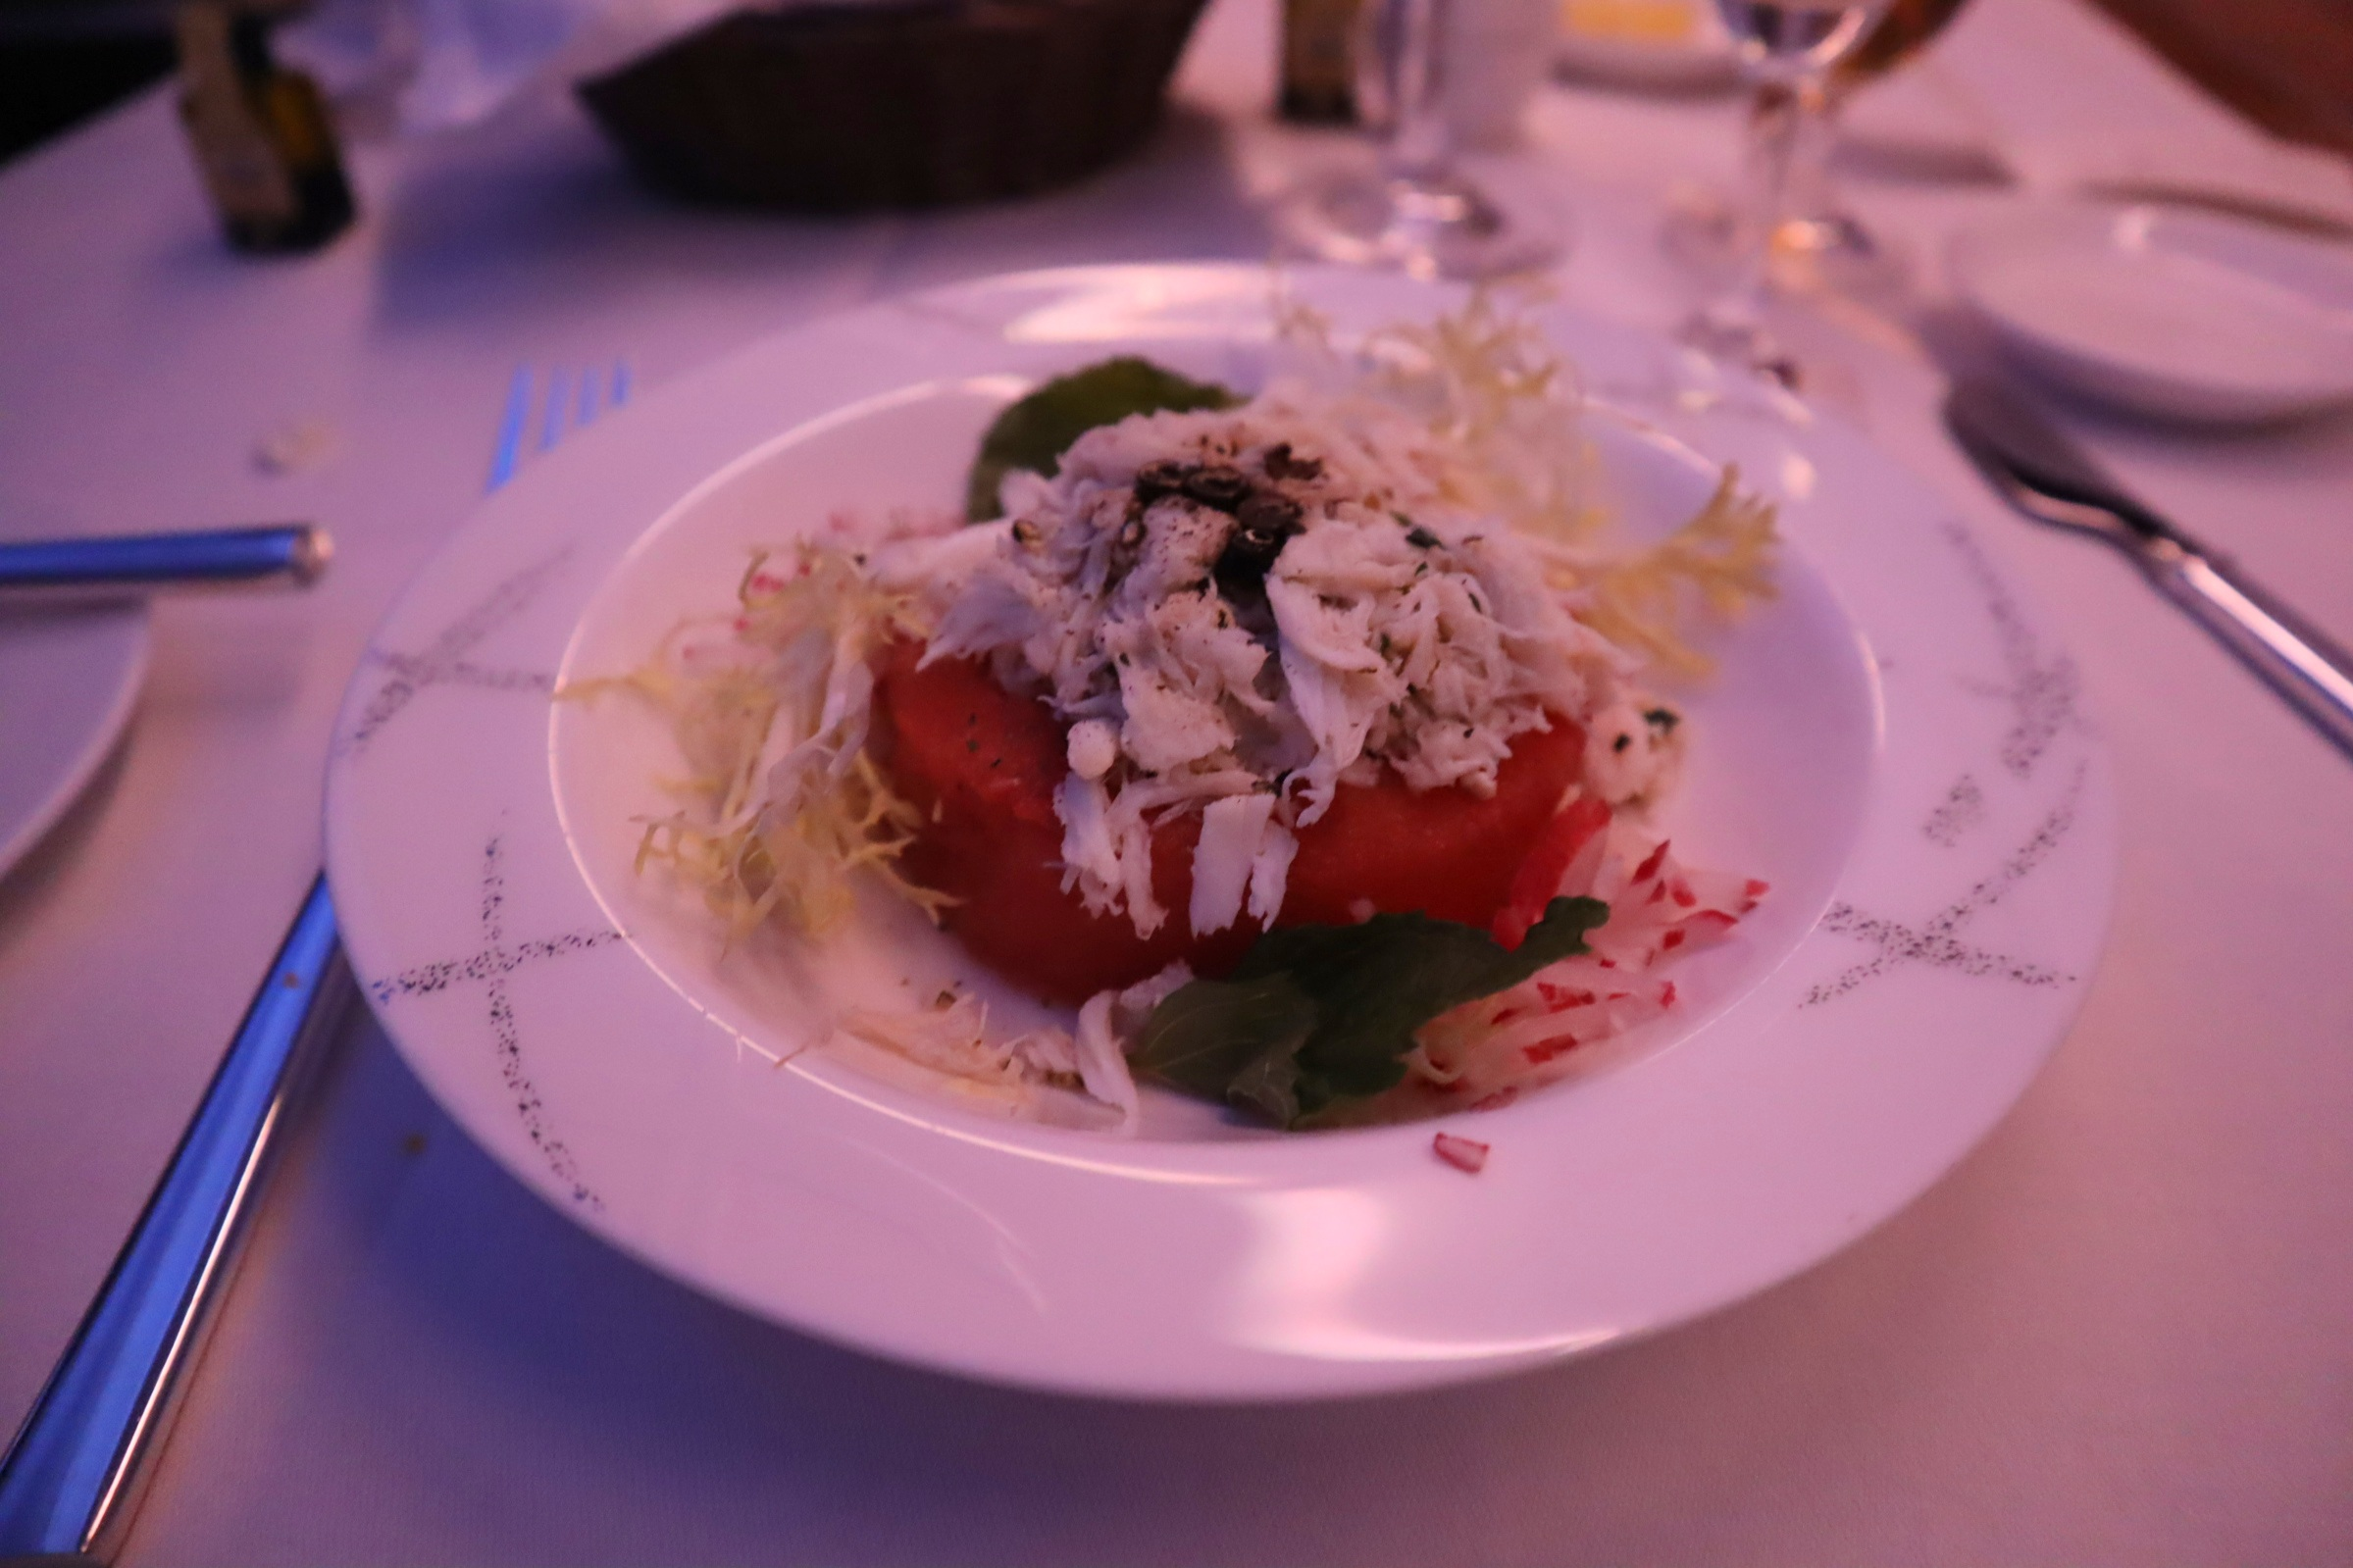 Cathay Pacific First Class – Watermelon and lobster salad